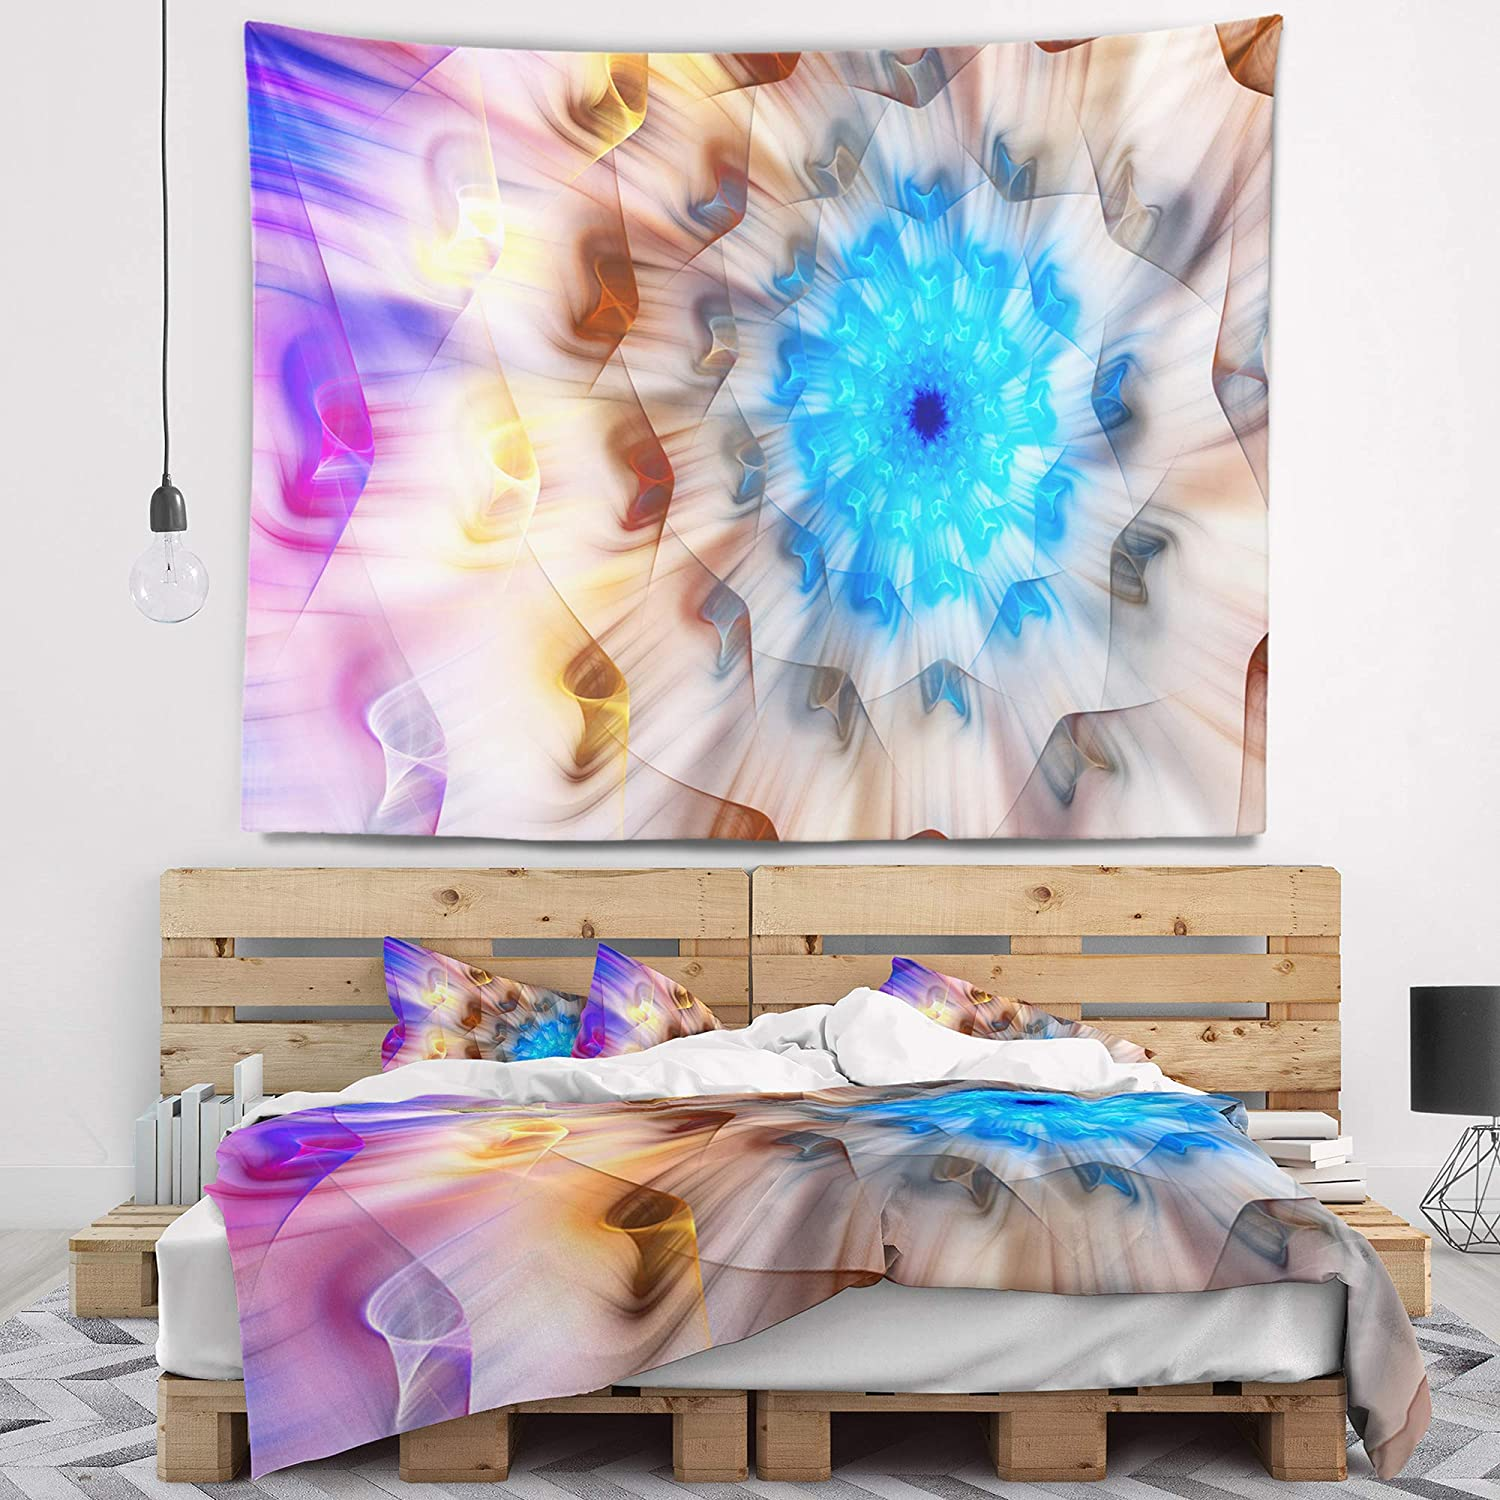 in Designart TAP15508-60-50  Blue Fractal Petals Dandelion Floral Blanket D/écor Art for Home and Office Wall Tapestry Large x 50 in 60 in